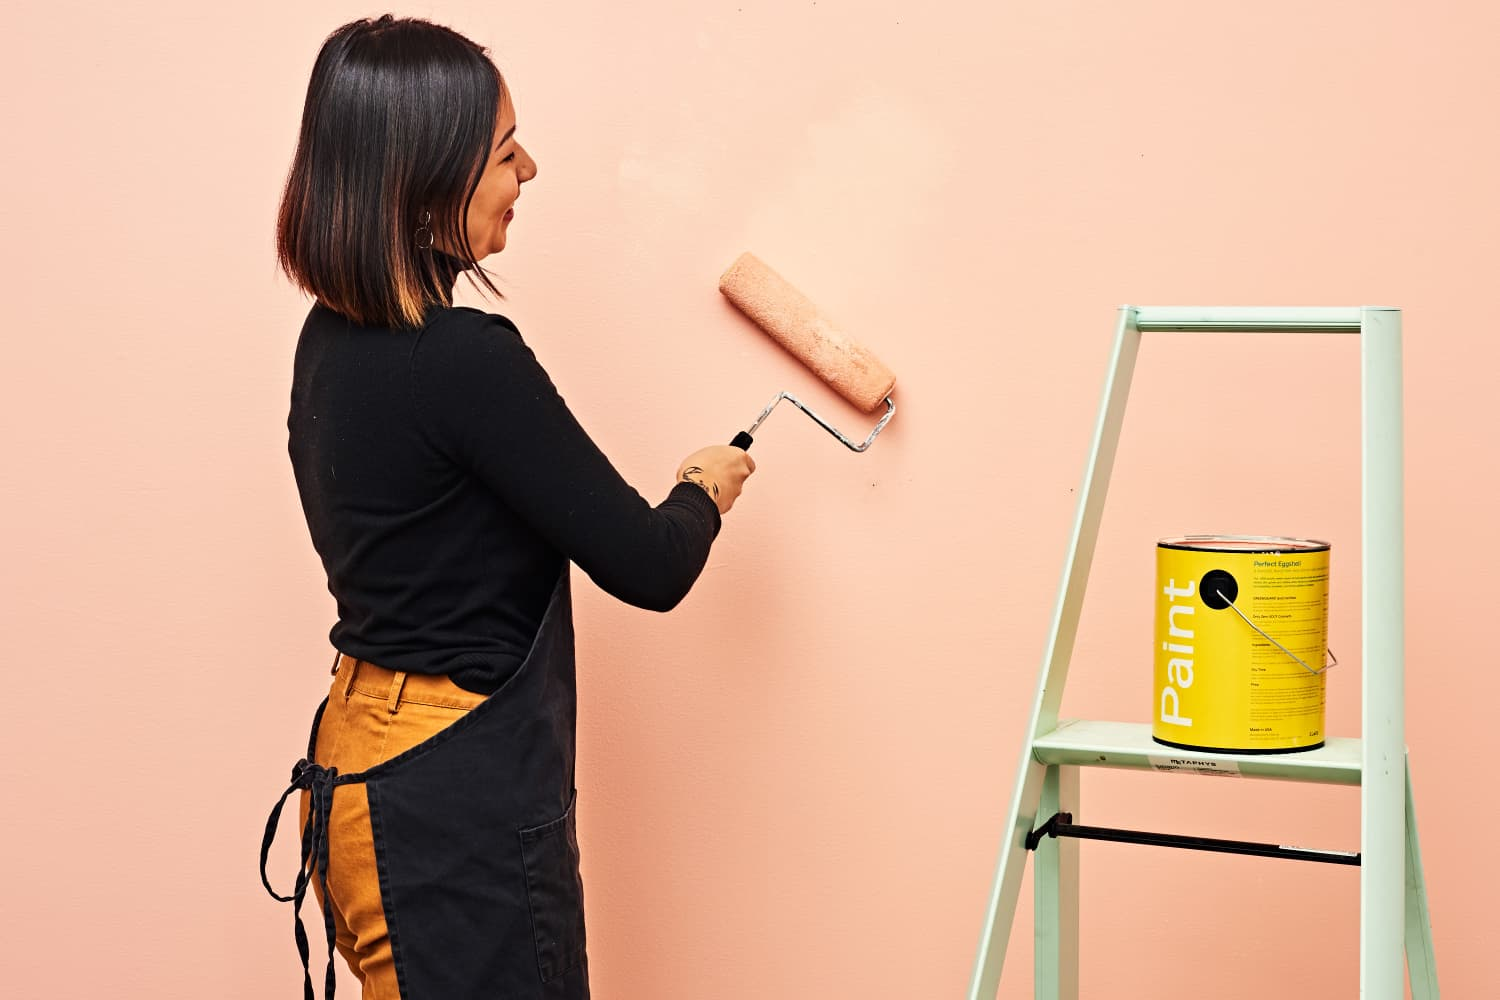 These Brilliant Paint Roller Hacks Will Save You Time, Money, and Mess